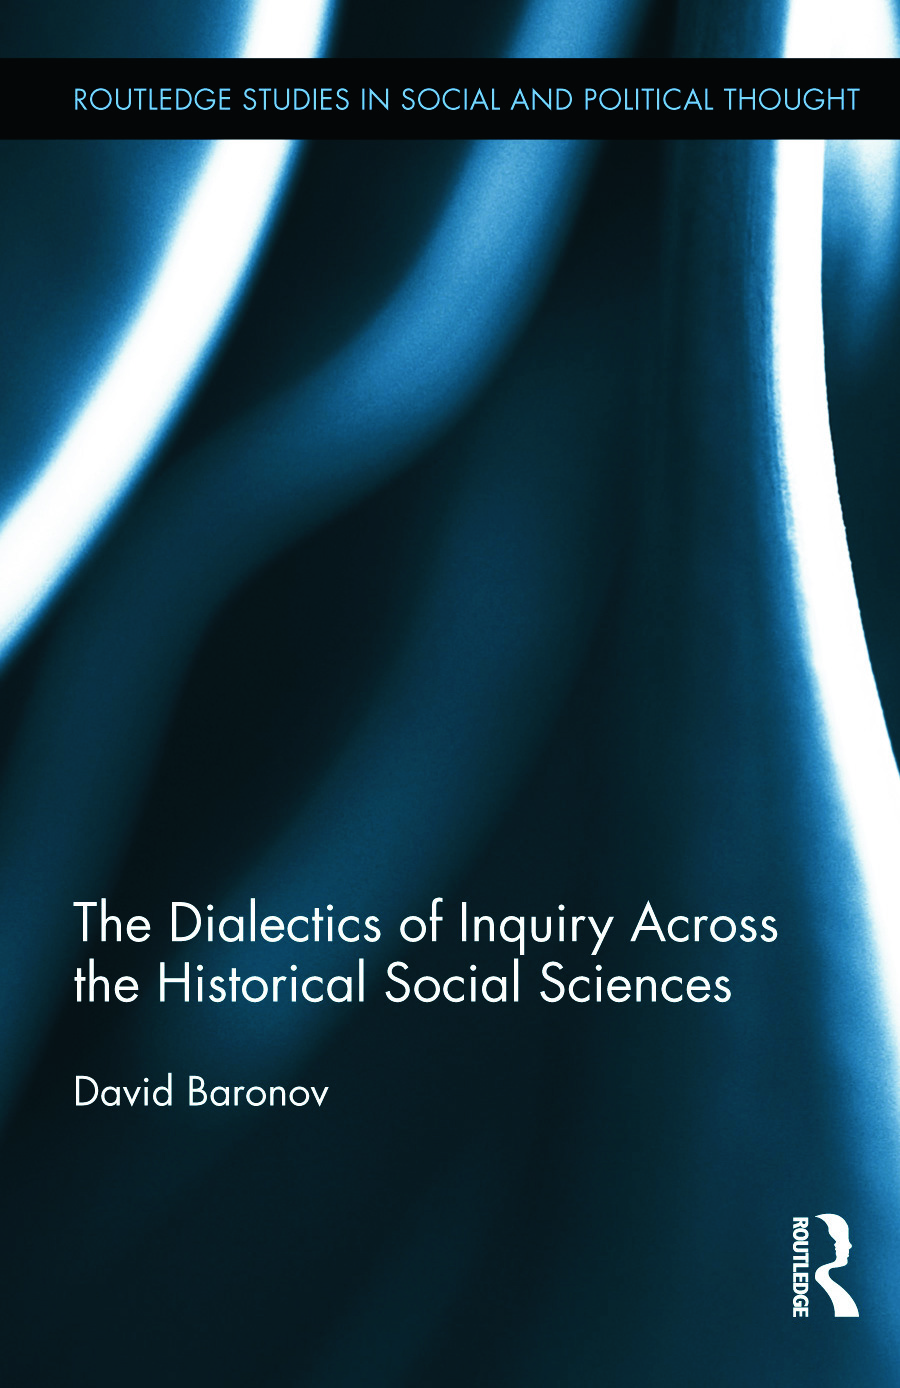 The Dialectics of Inquiry Across the Historical Social Sciences: 1st Edition (Paperback) book cover